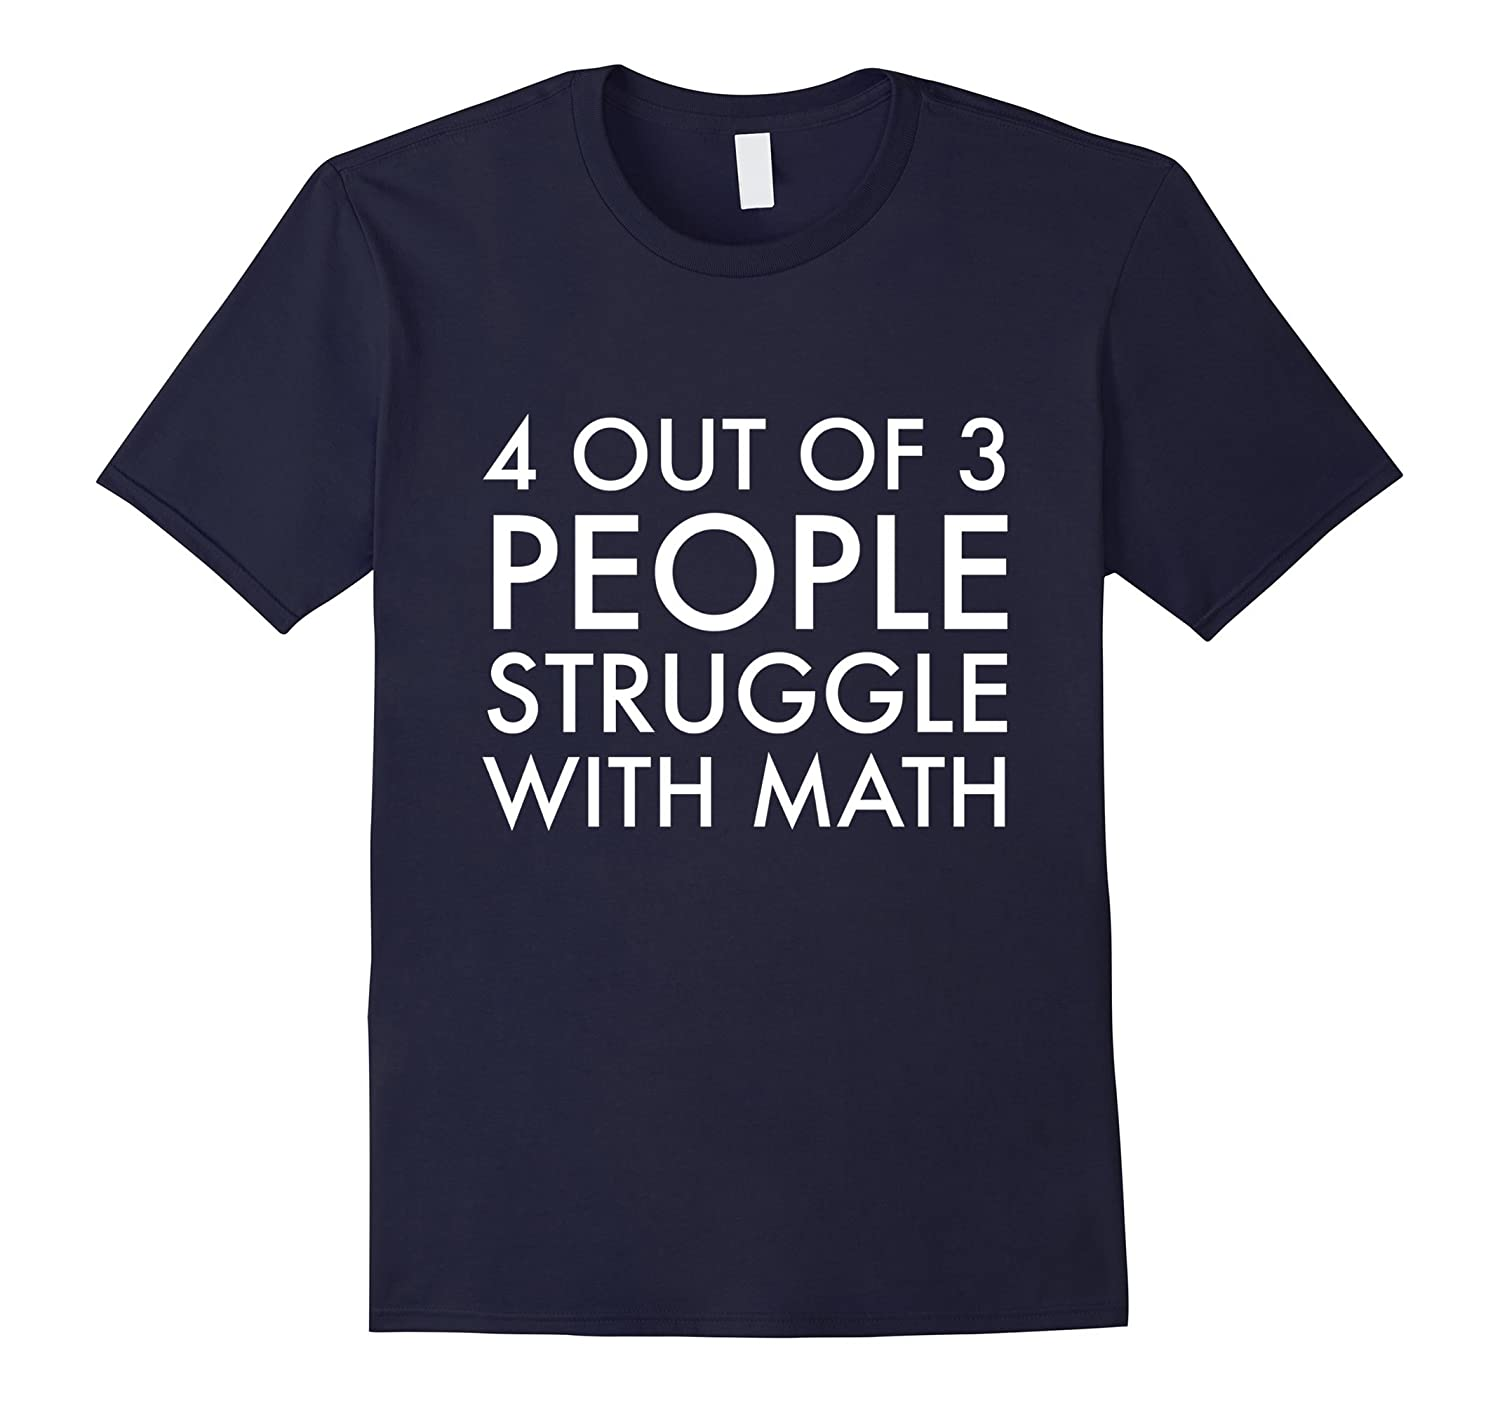 4 Out of 3 People Struggle with Math T-Shirt Geek Nerd Tee-ah my shirt one gift